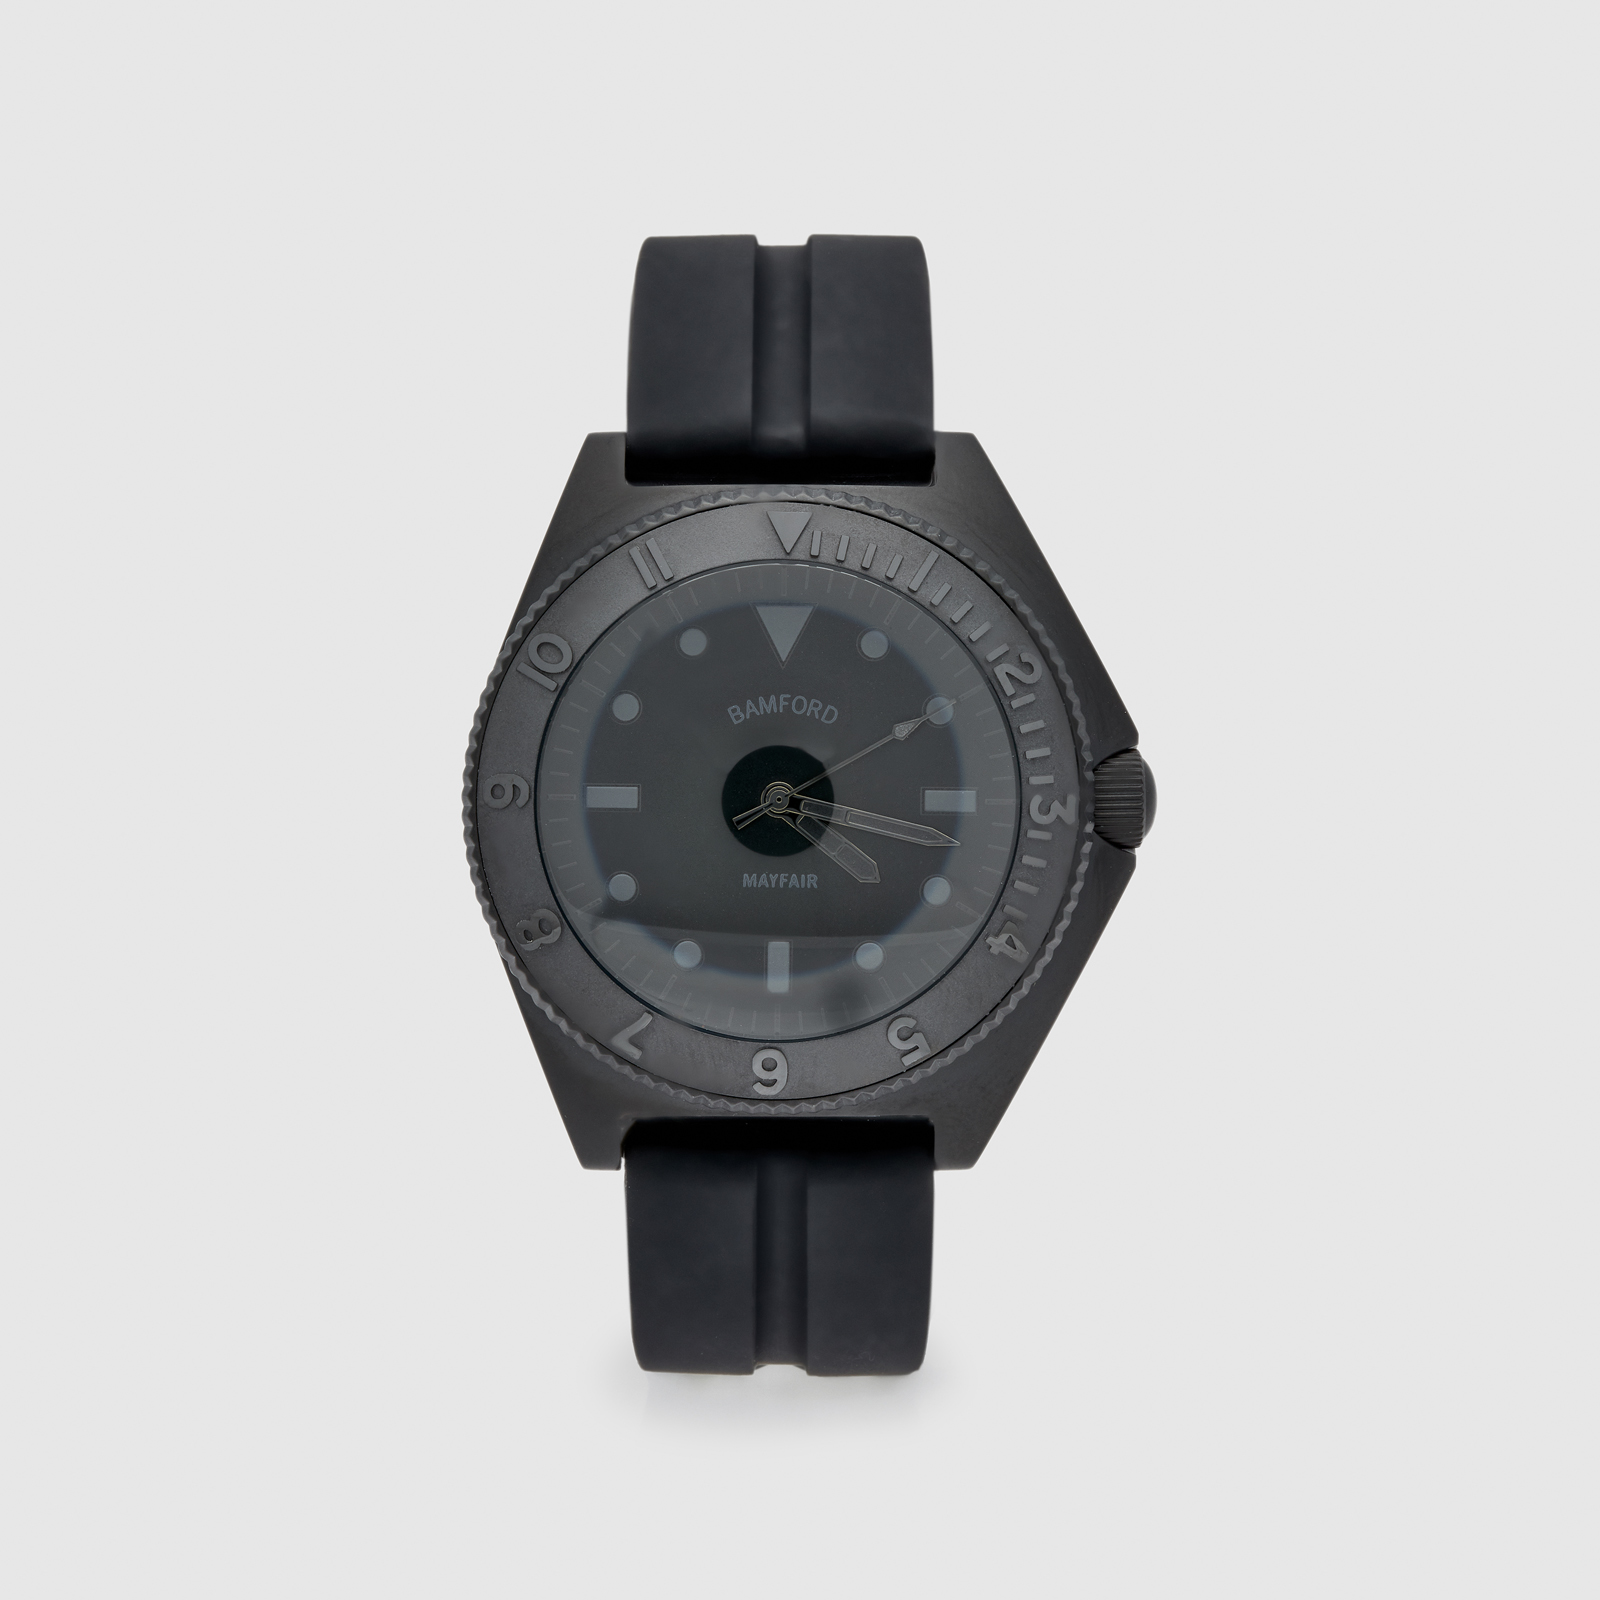 bamford_watch_department_01.jpg